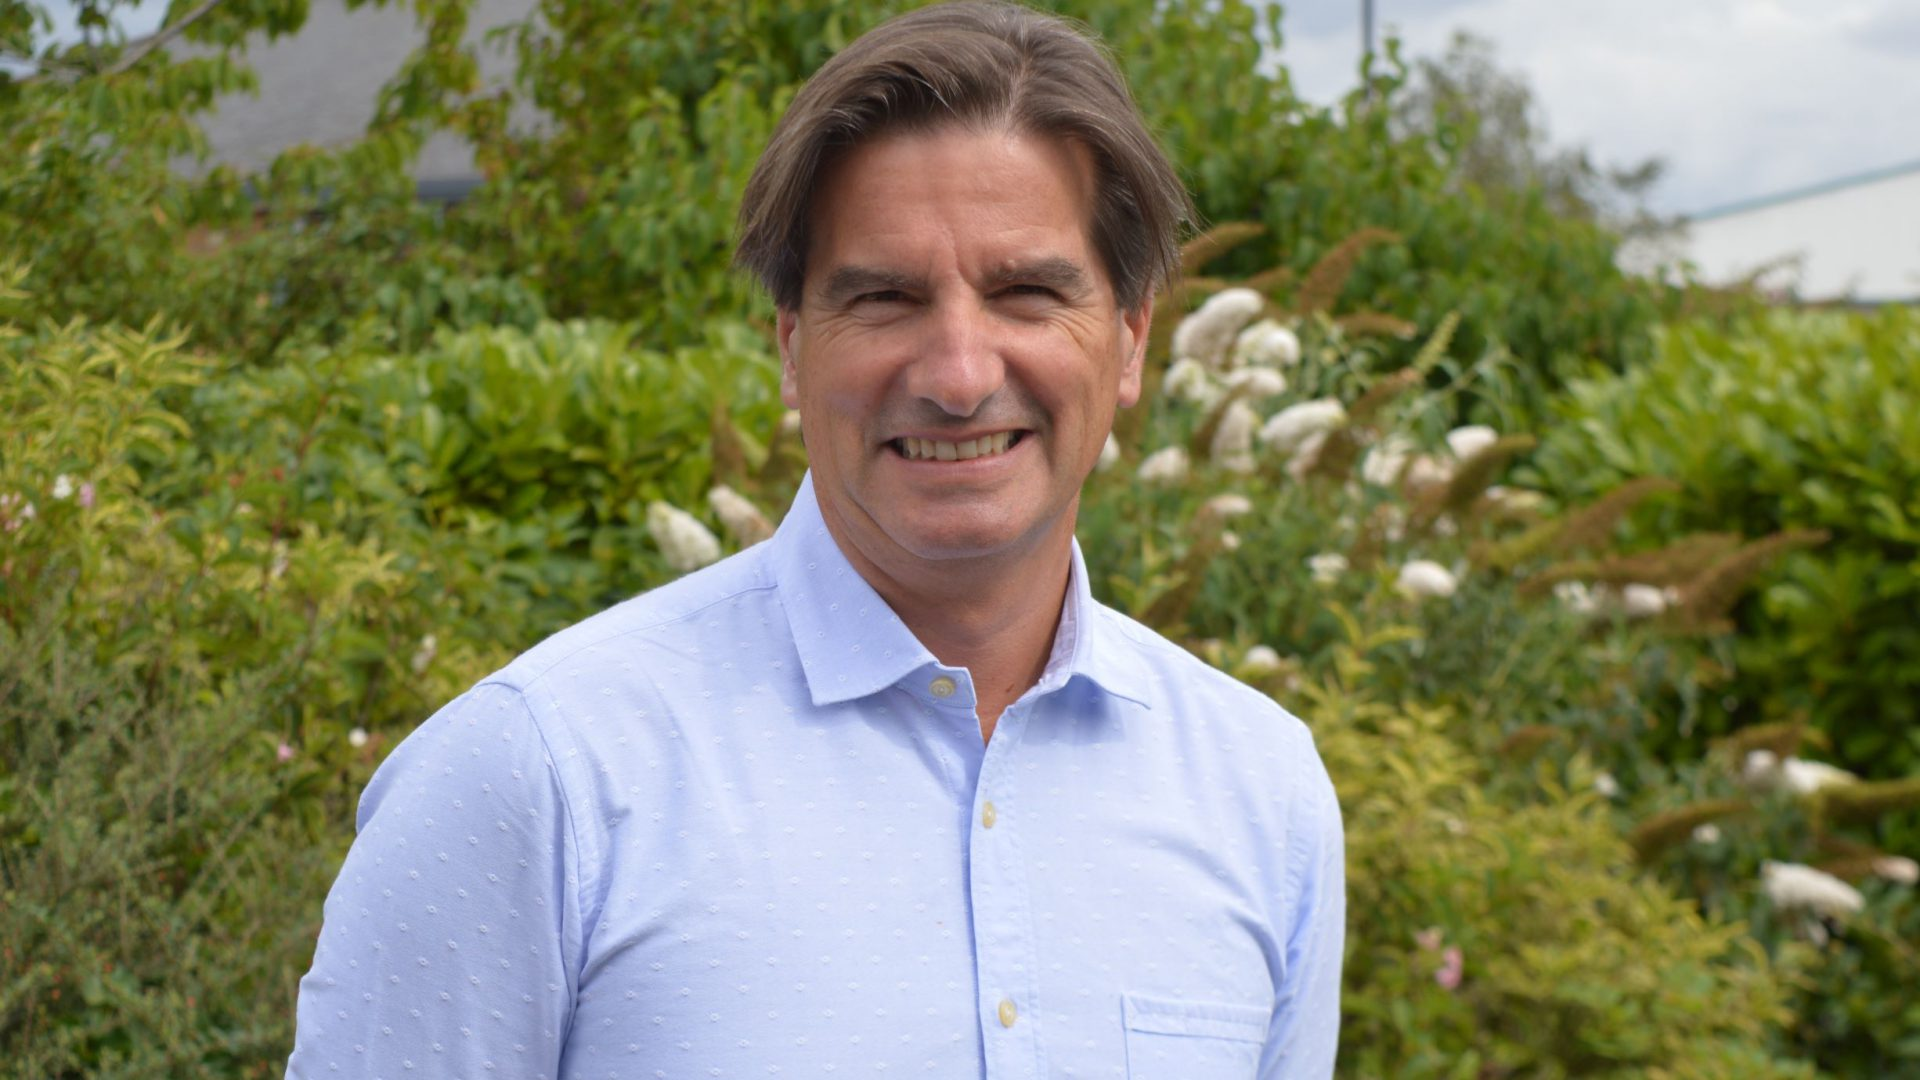 VetPartners Italy MD predicts pandemic will accelerate further change in veterinary profession